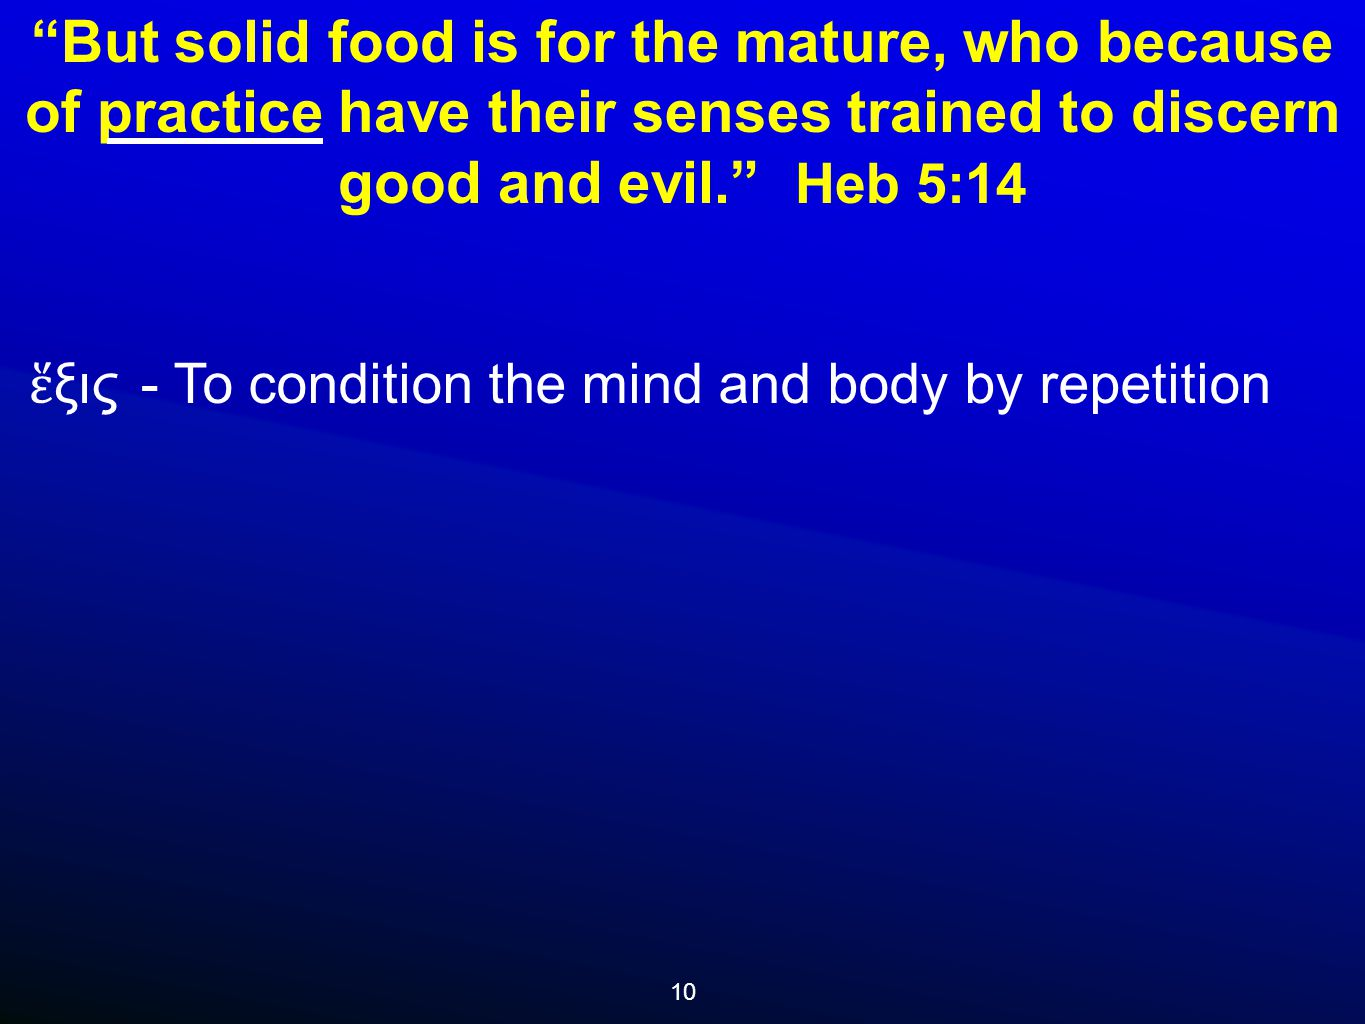 10 But solid food is for the mature, who because of practice have their senses trained to discern good and evil. Heb 5:14 ἕ ξις - To condition the mind and body by repetition